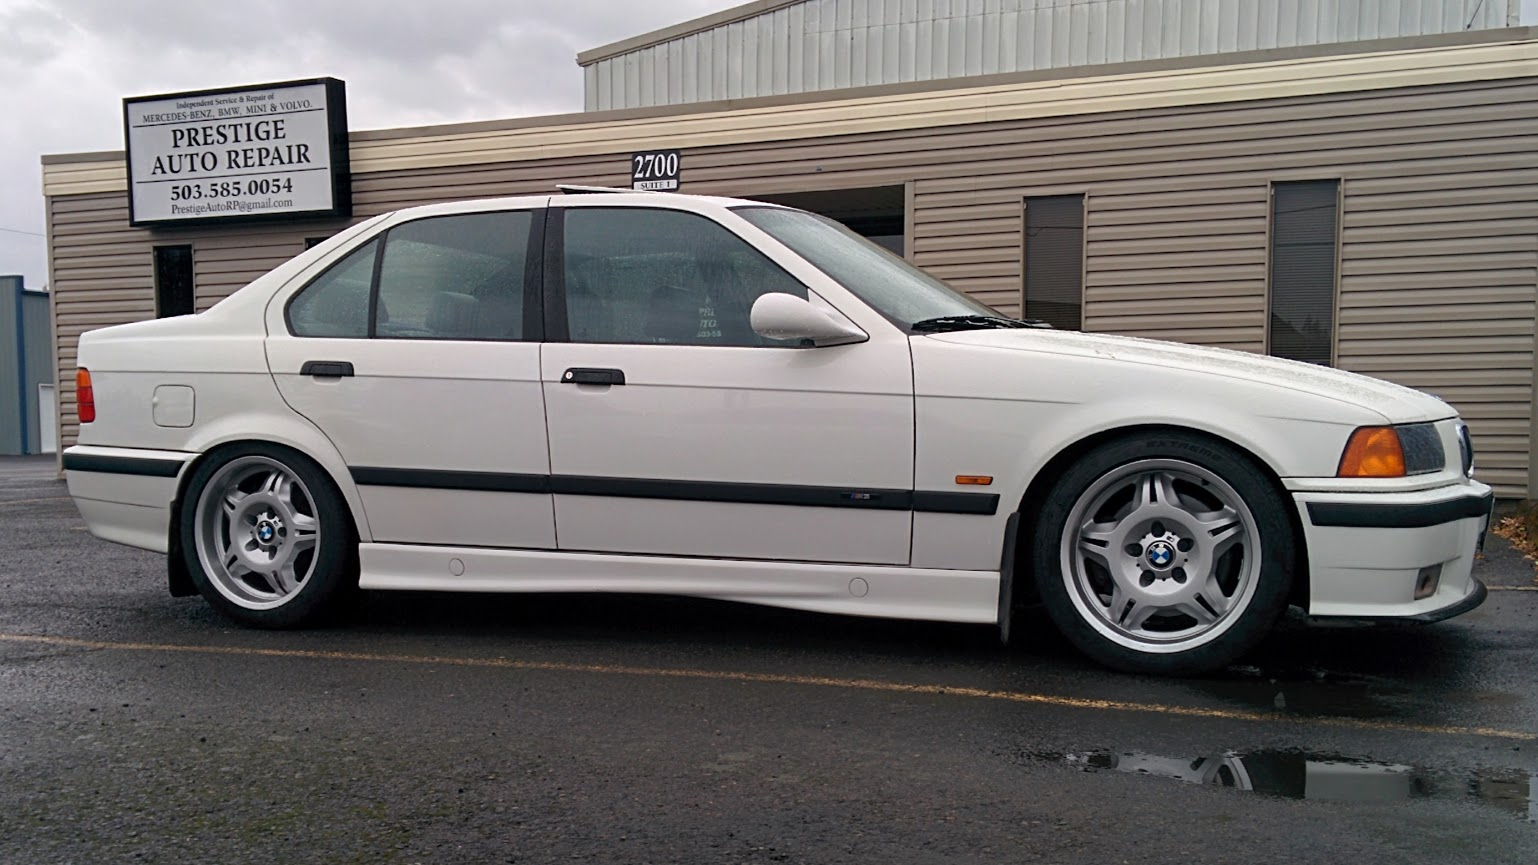 e36 fs 1998 m3 4 door  5 speed manual  alpine white w  mulberry bmw service manual 2009 m3 bmw e30 325i service manual pdf